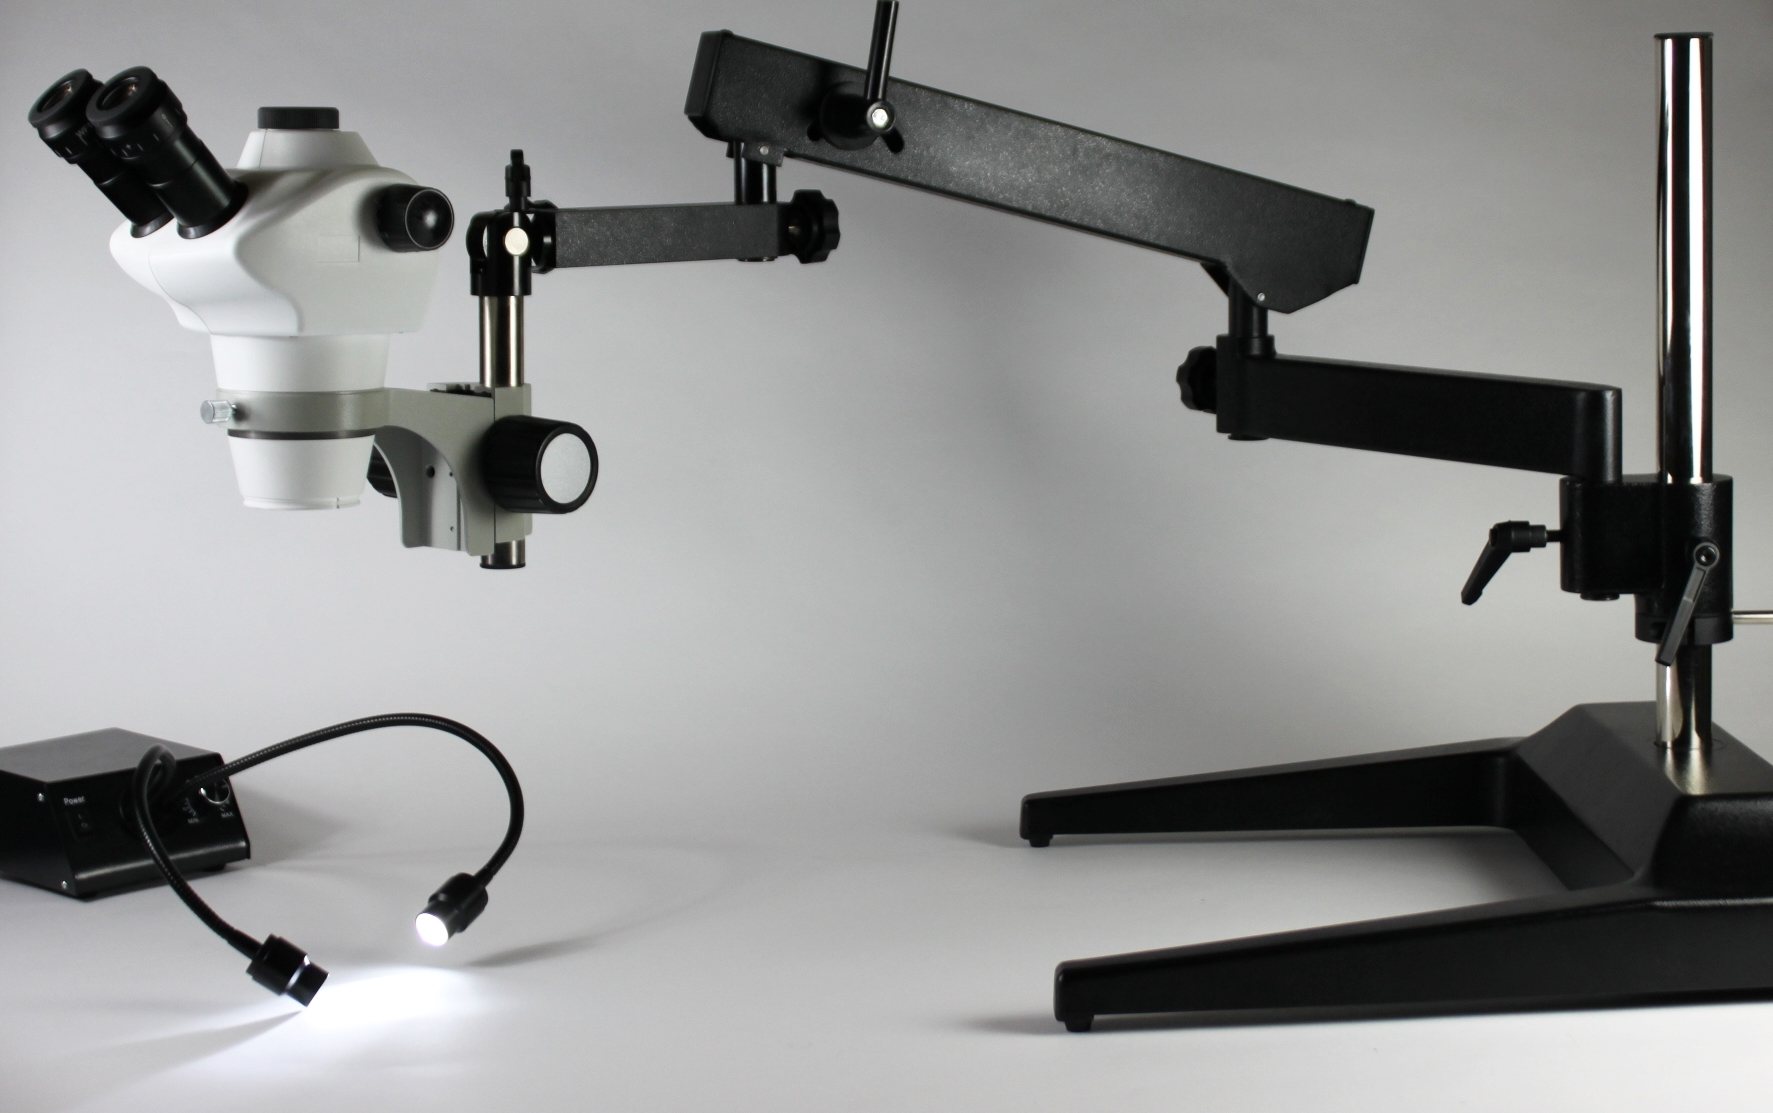 A20-50-60-_with_ASPEN_GTS6_-_Long_Reach_Microscope_Stand_GX_Microscopes_by_GT_Vision_Ltd